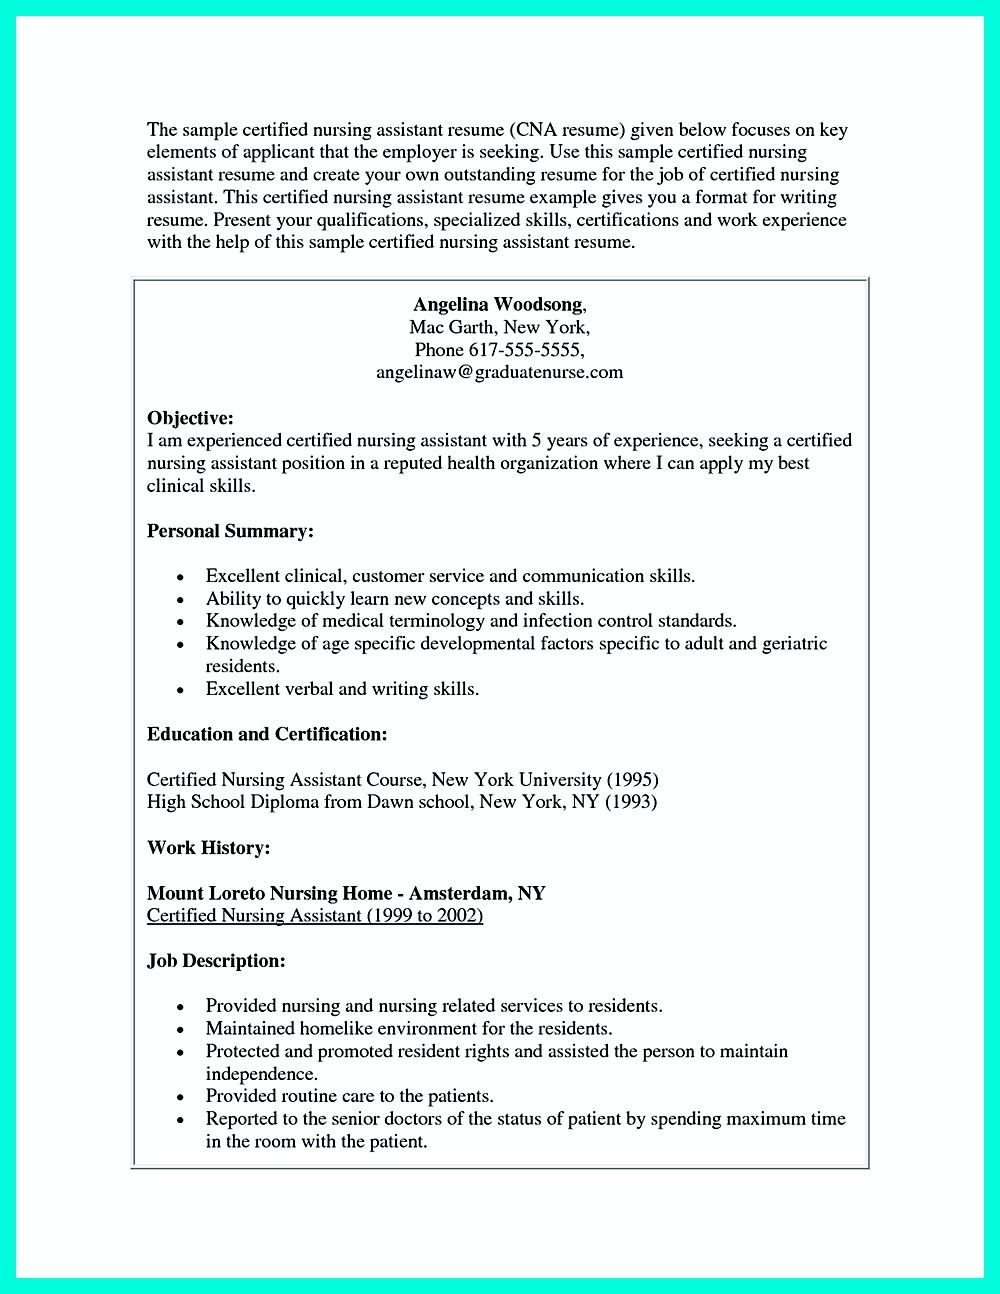 writing certified nursing assistant resume is simple if you follow these simple tips  some